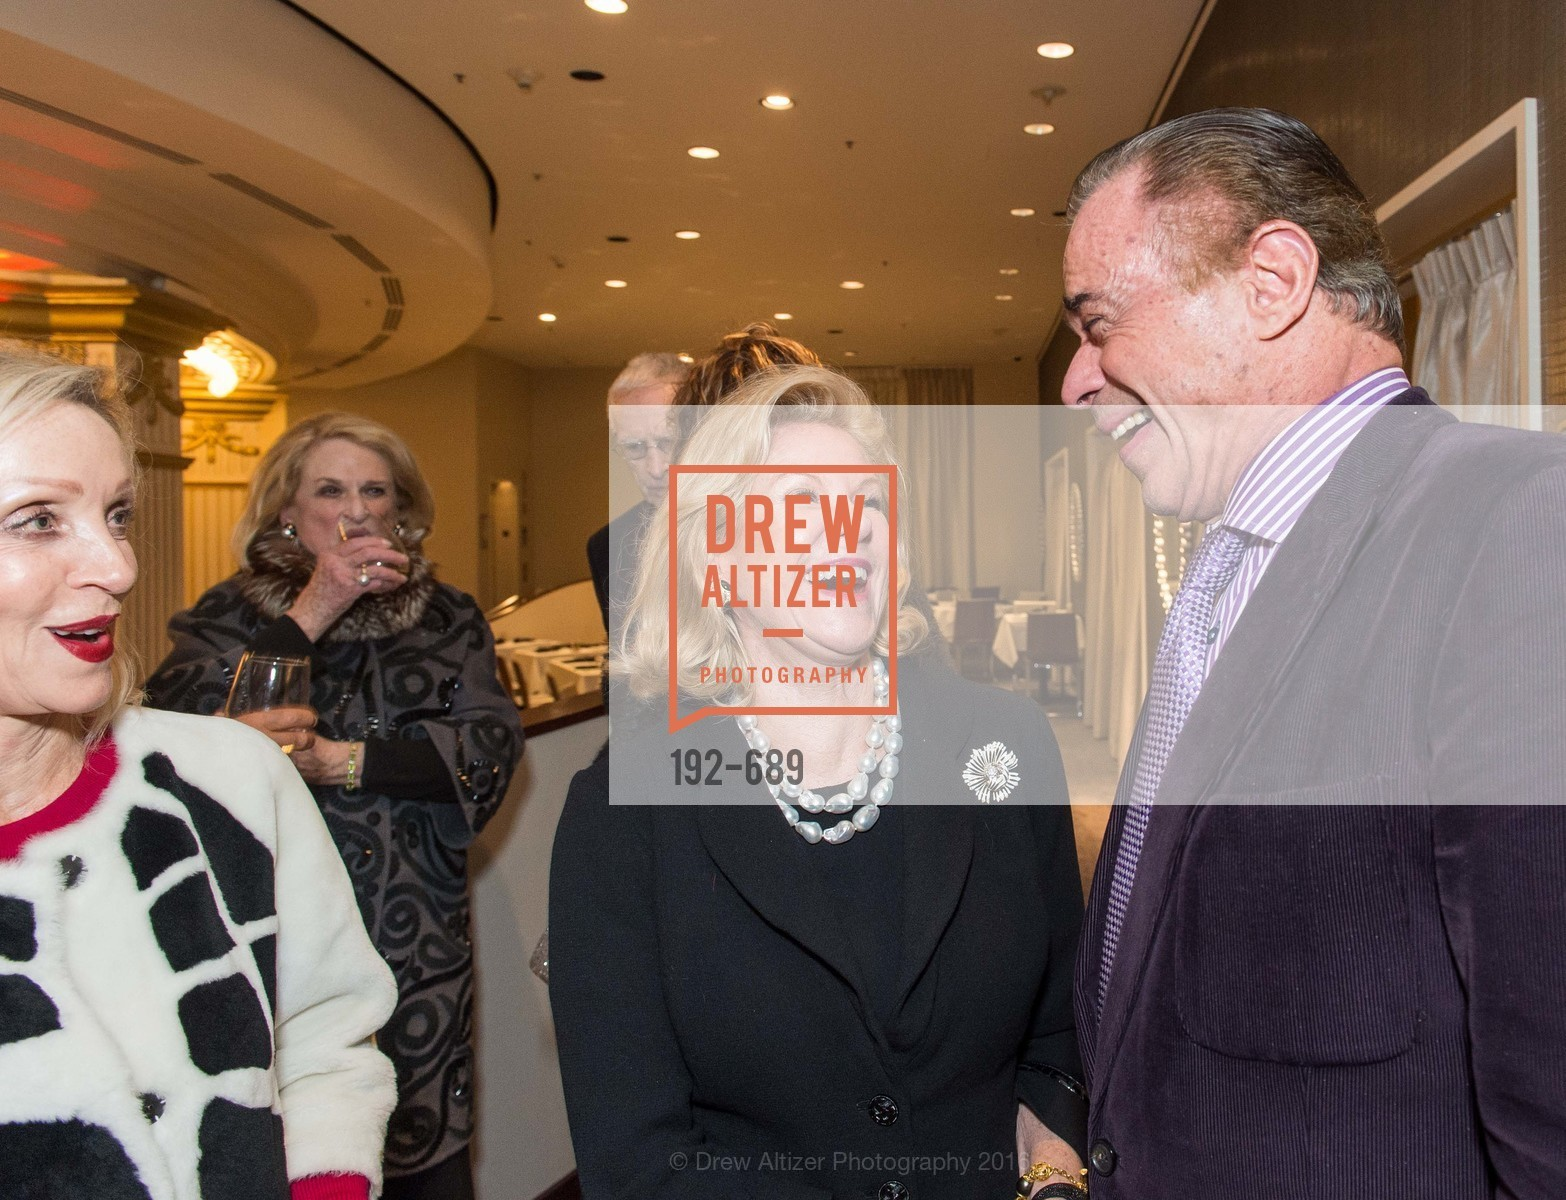 Barbara Brown, Dede Wilsey, Richard Benefield, Oscar de la Renta Cocktail Party with Boaz Mazor, The Rotunda Restaurant, January 19th, 2016,Drew Altizer, Drew Altizer Photography, full-service agency, private events, San Francisco photographer, photographer california